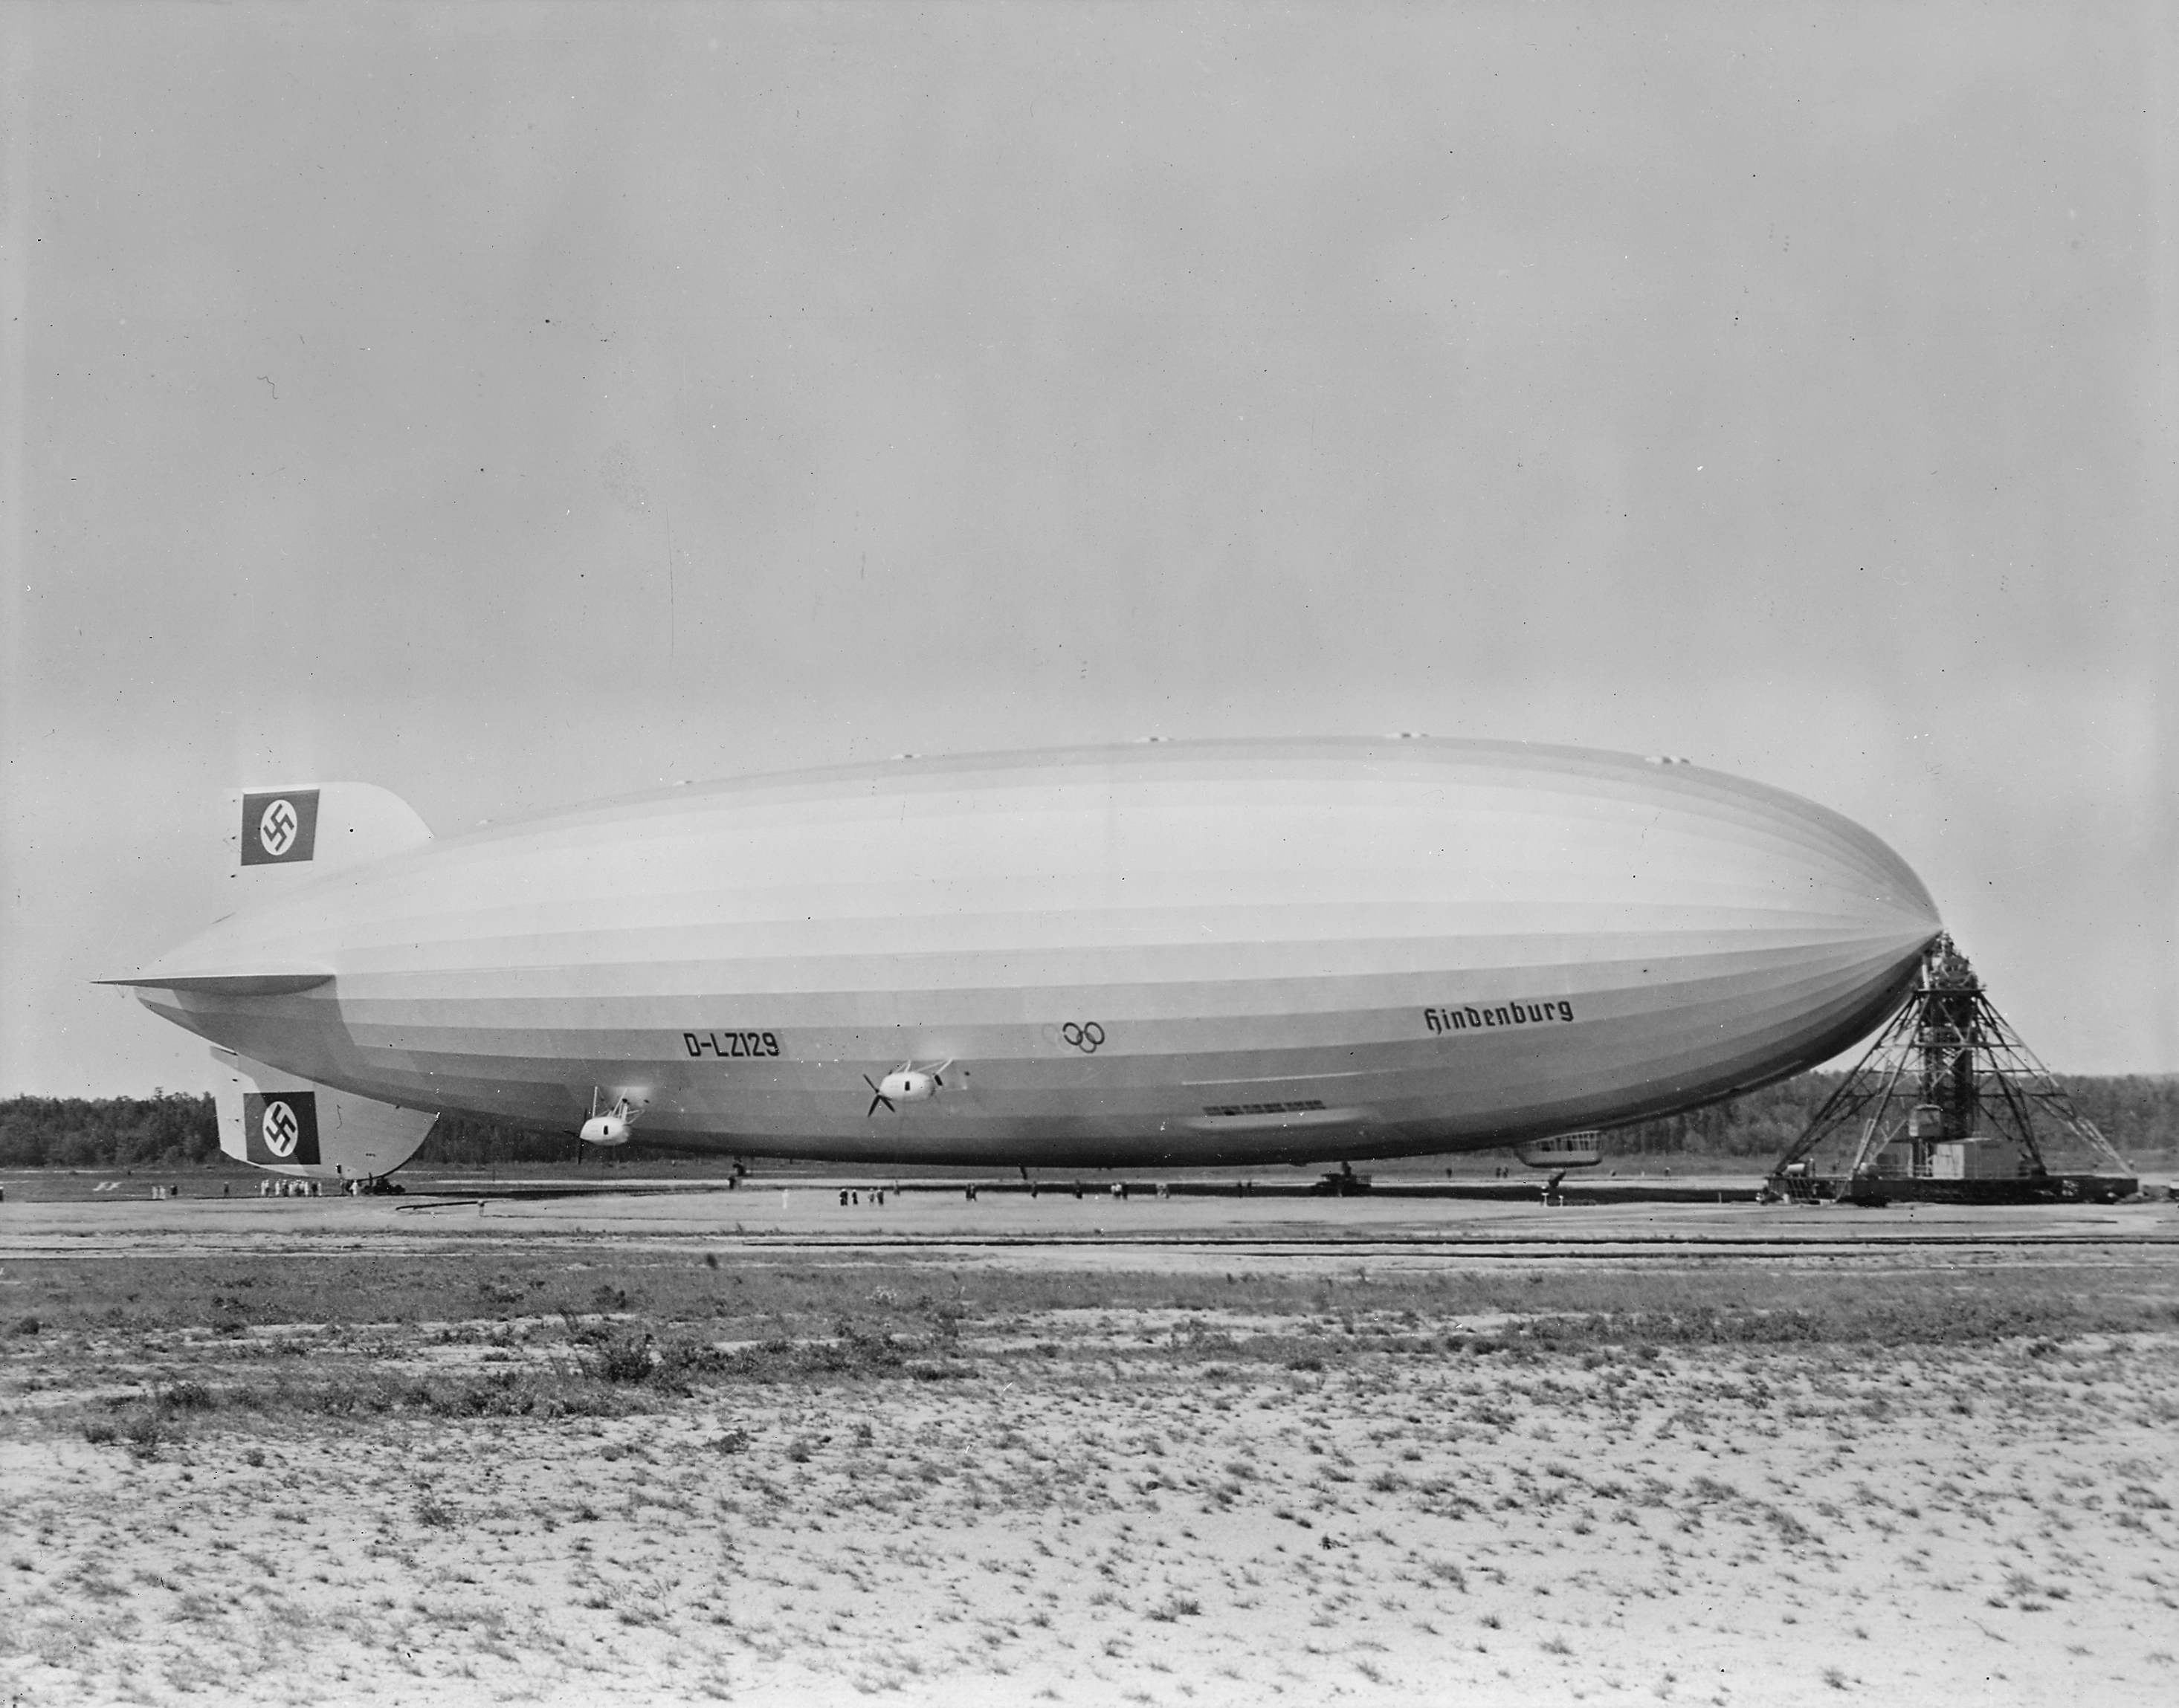 Hindenburg_at_lakehurst.jpg